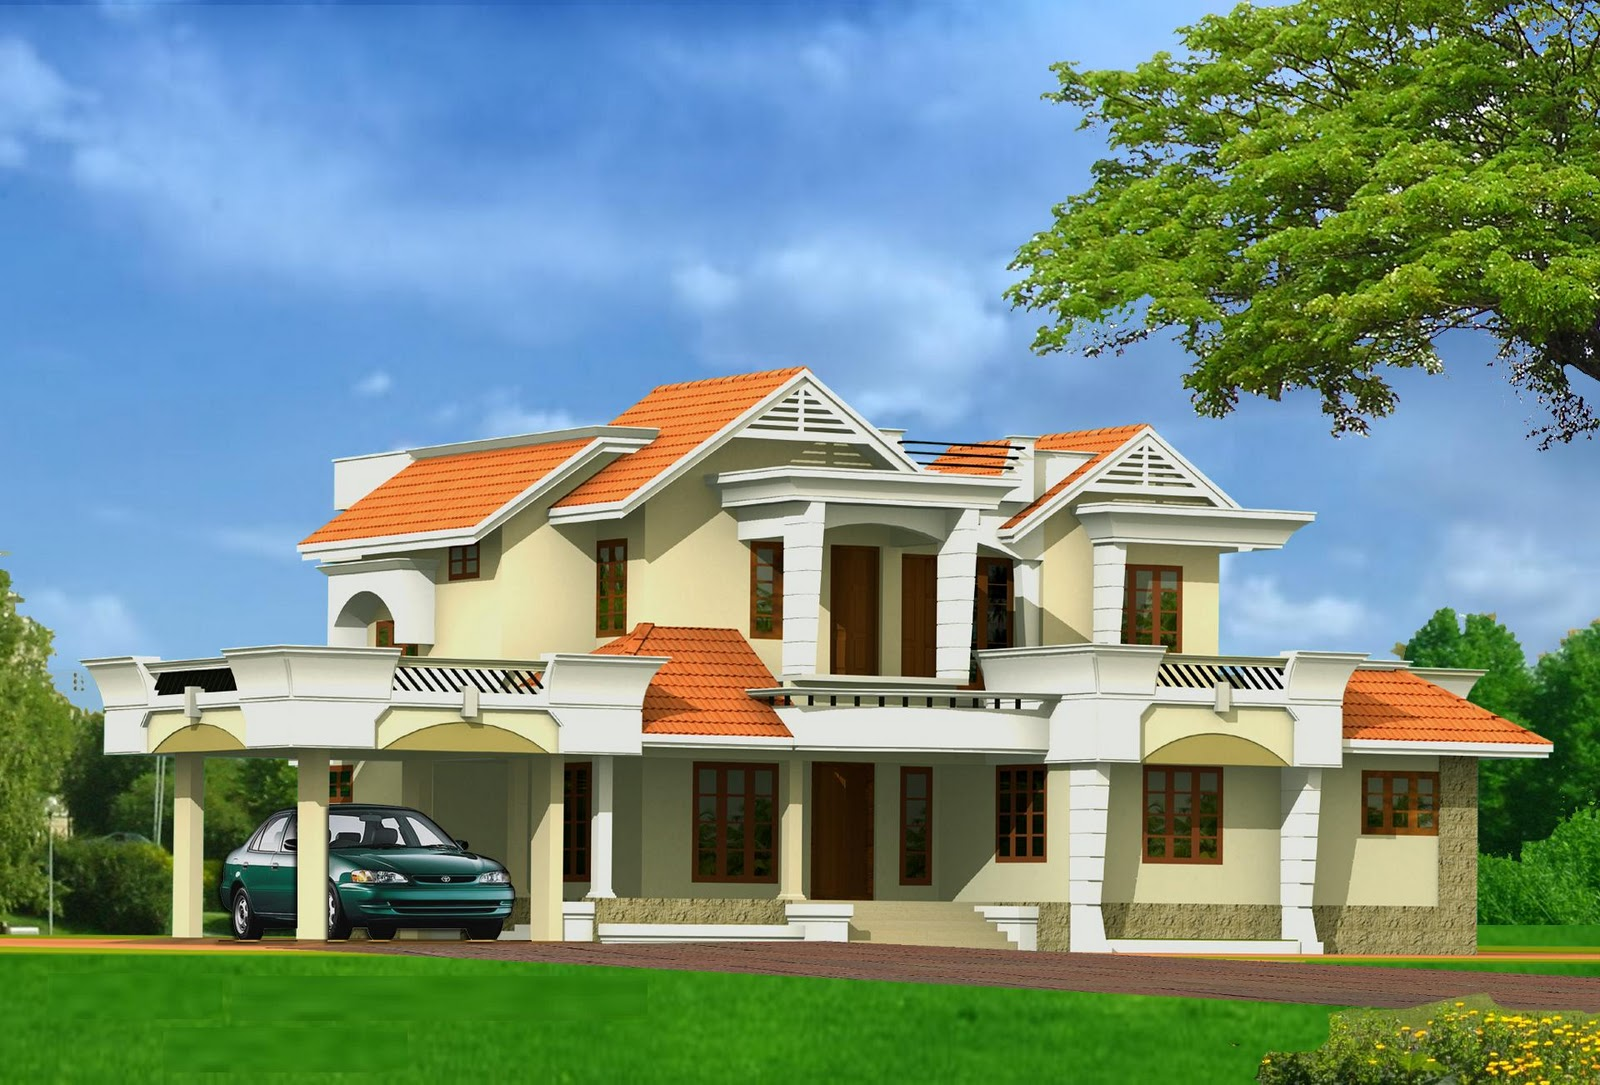 House plans and design architectural designs of for Residential building plans